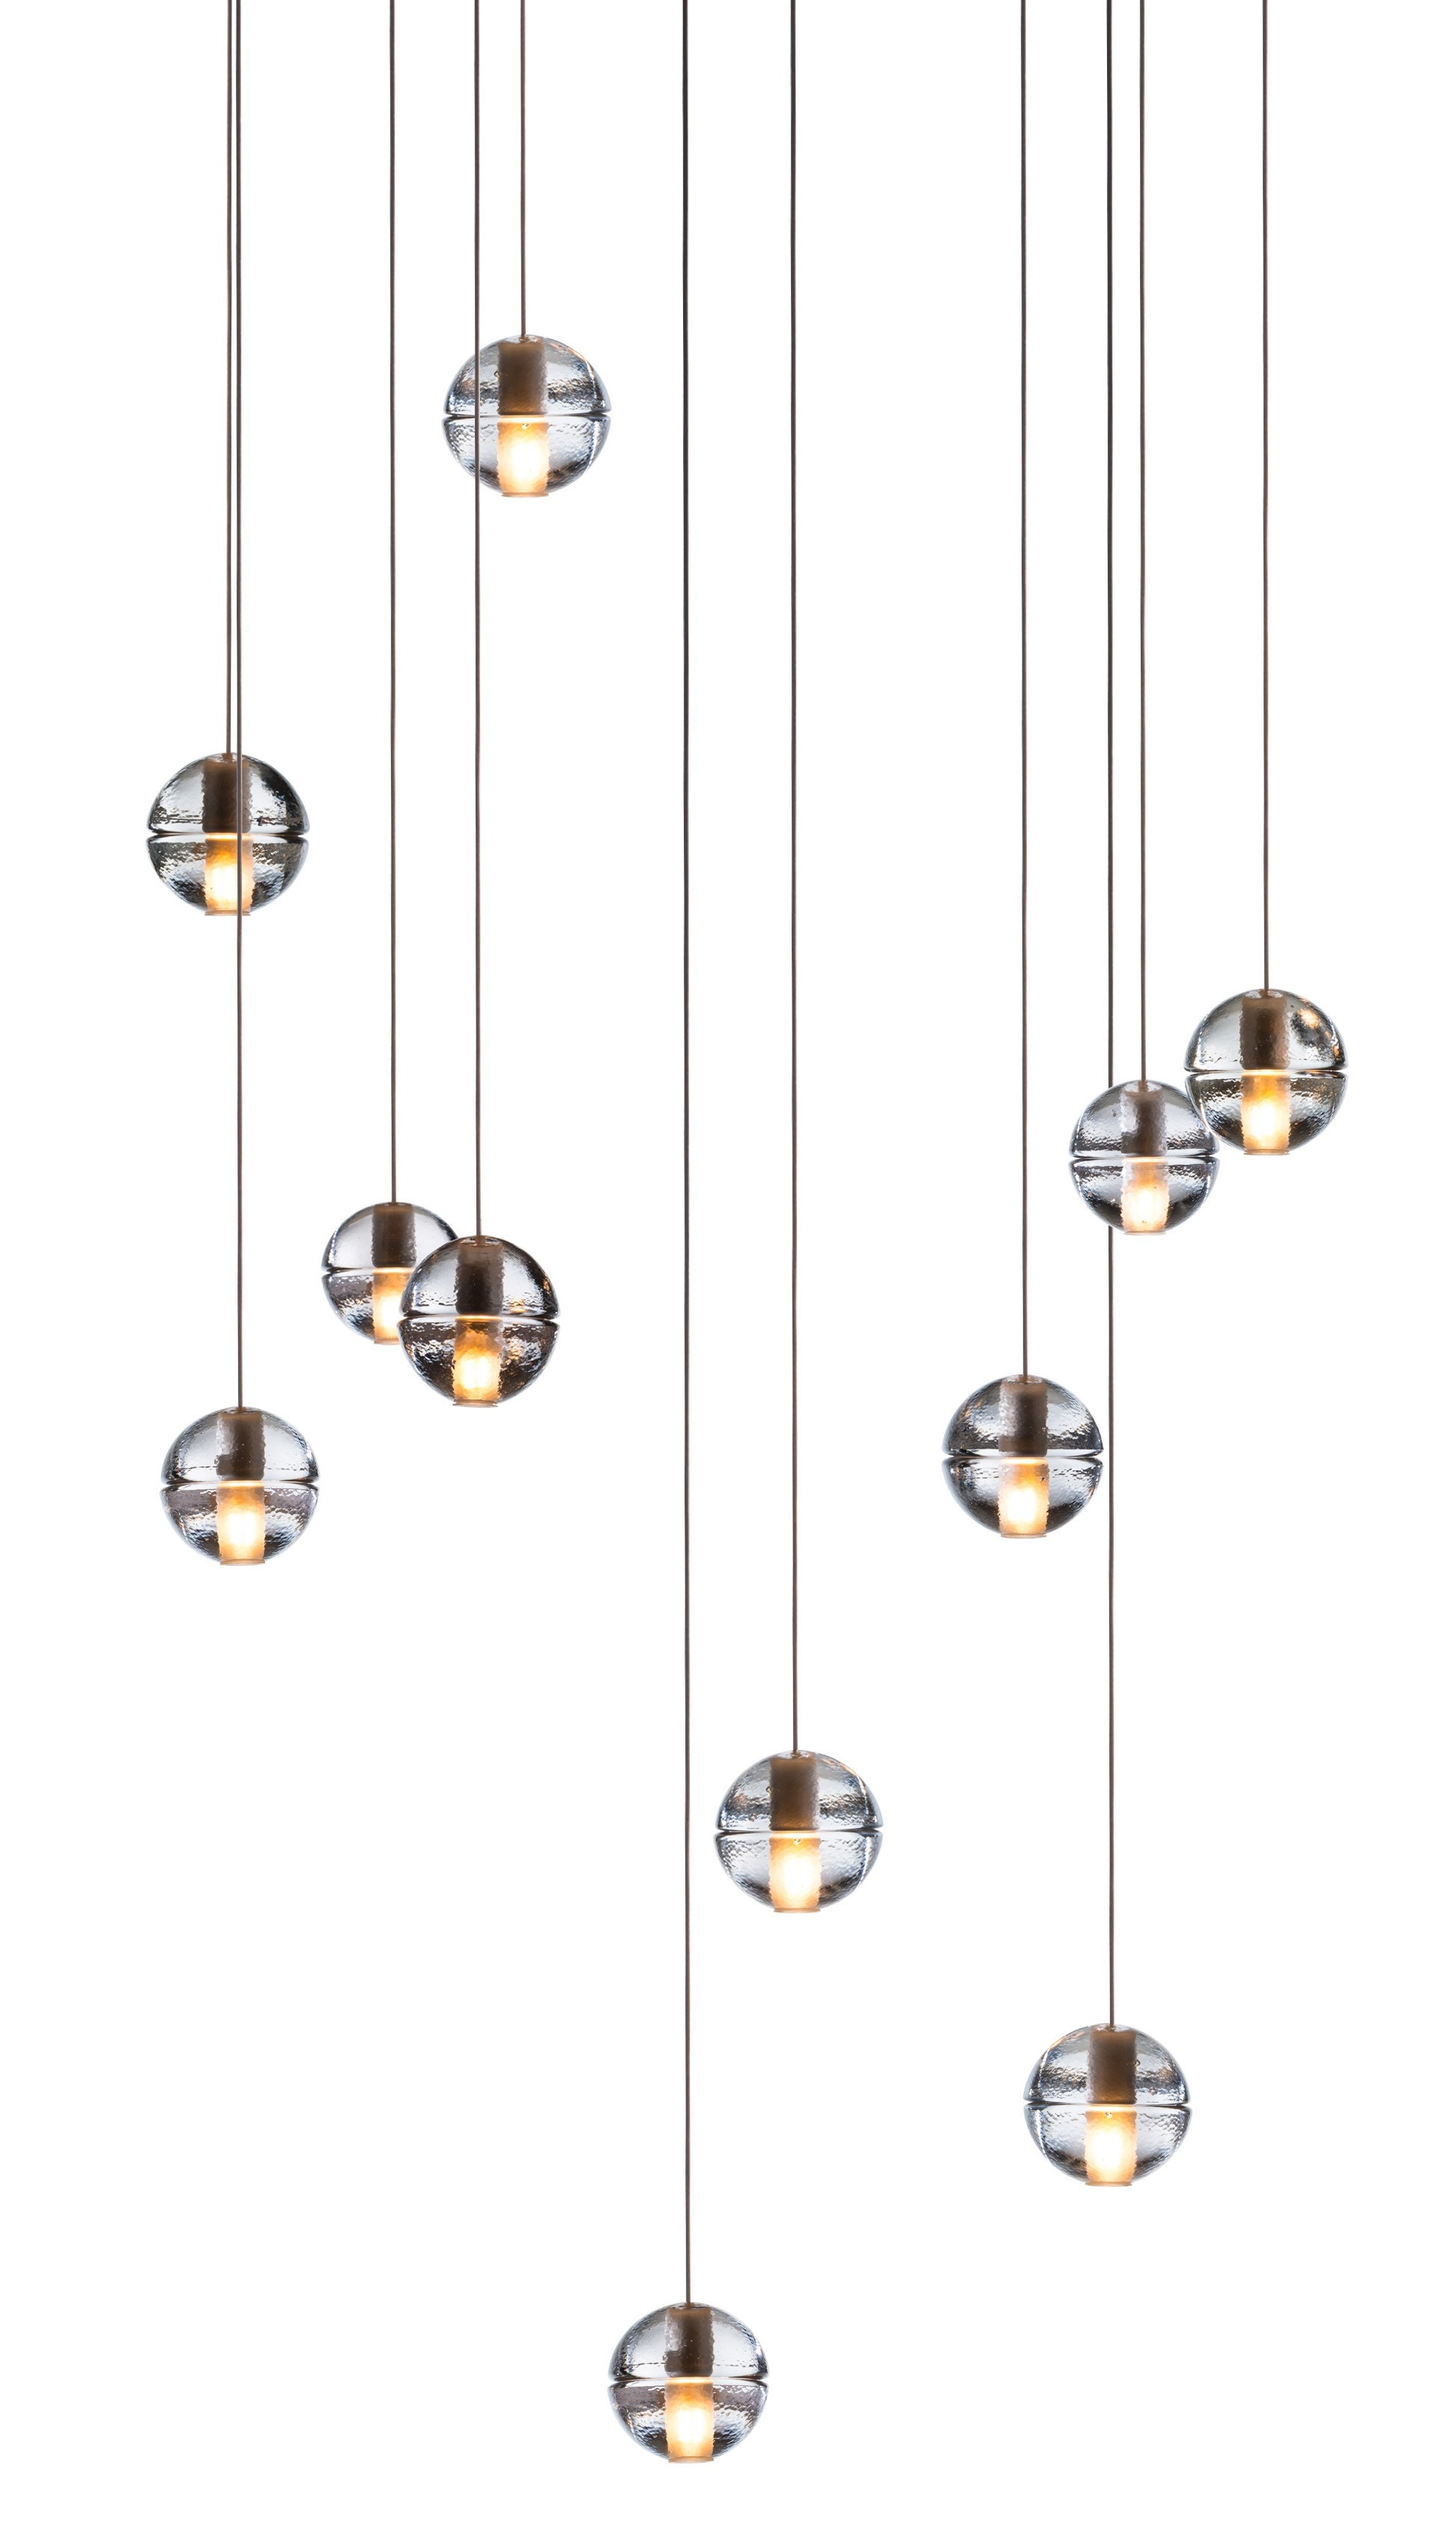 Bocci 14.11 Square Pendant Light  sc 1 th 296 & Bocci 14.11 Square Pendant Light - GR Shop Canada azcodes.com